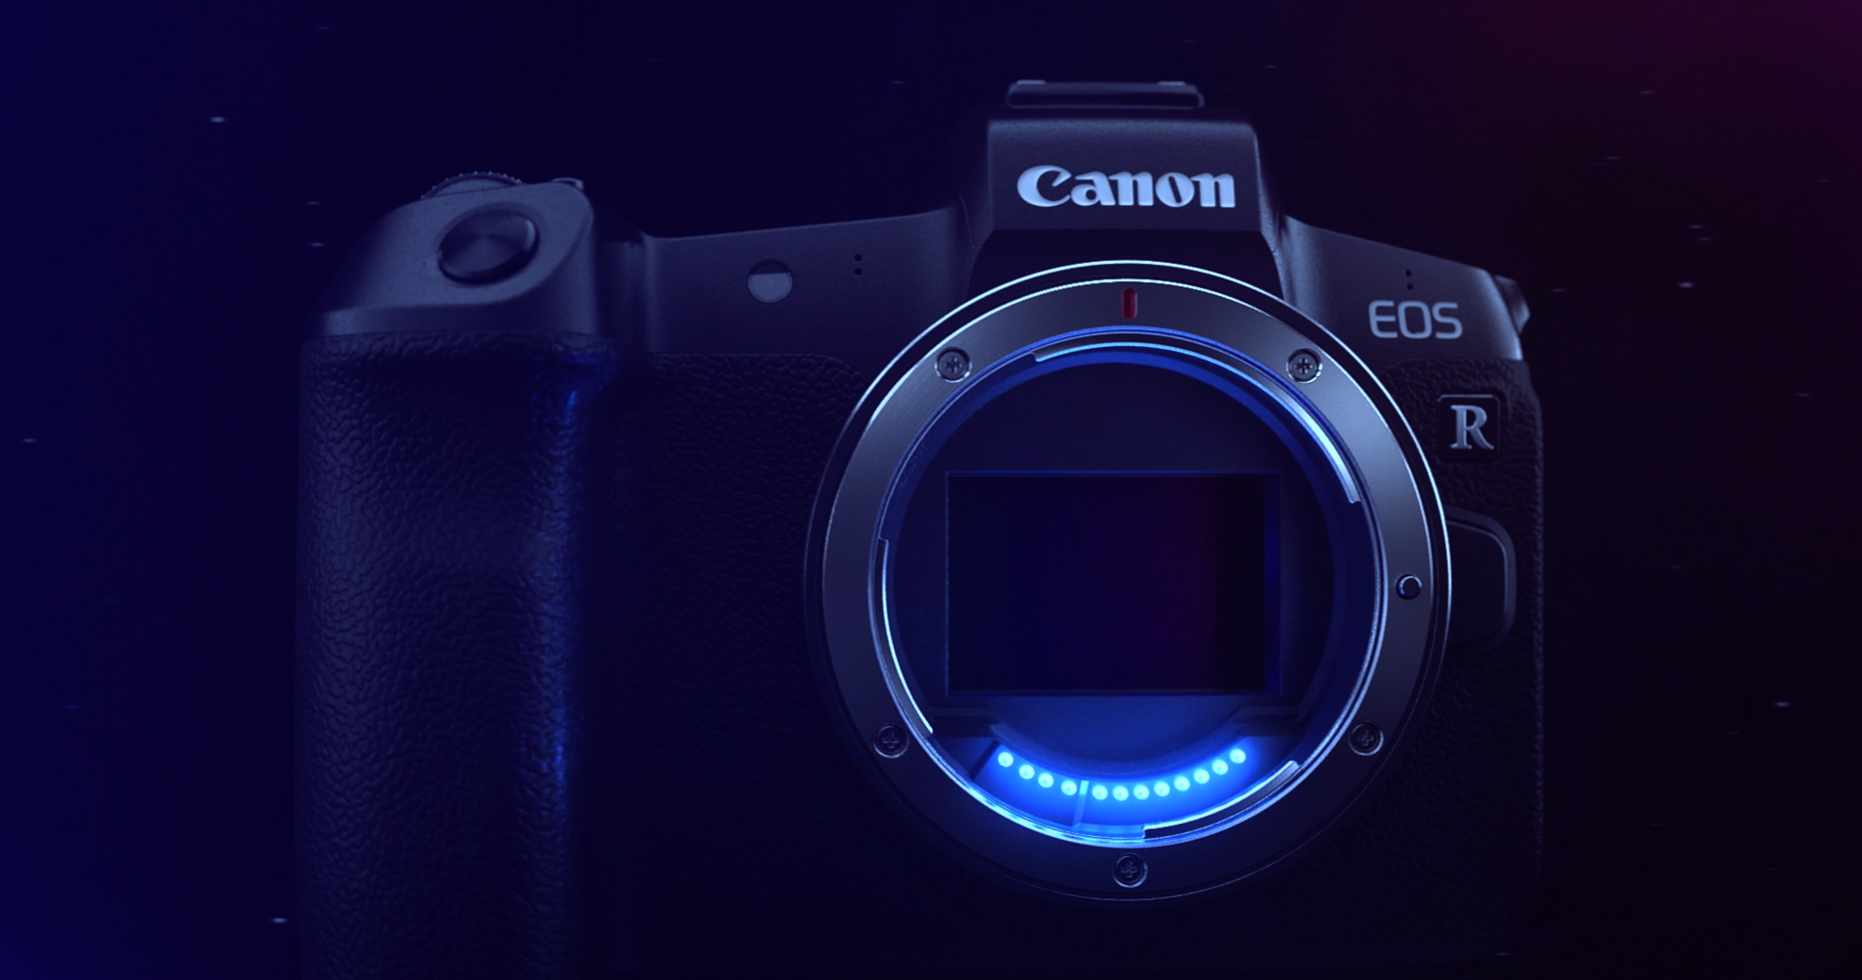 A Canon EOS R Camera with sensor exposed